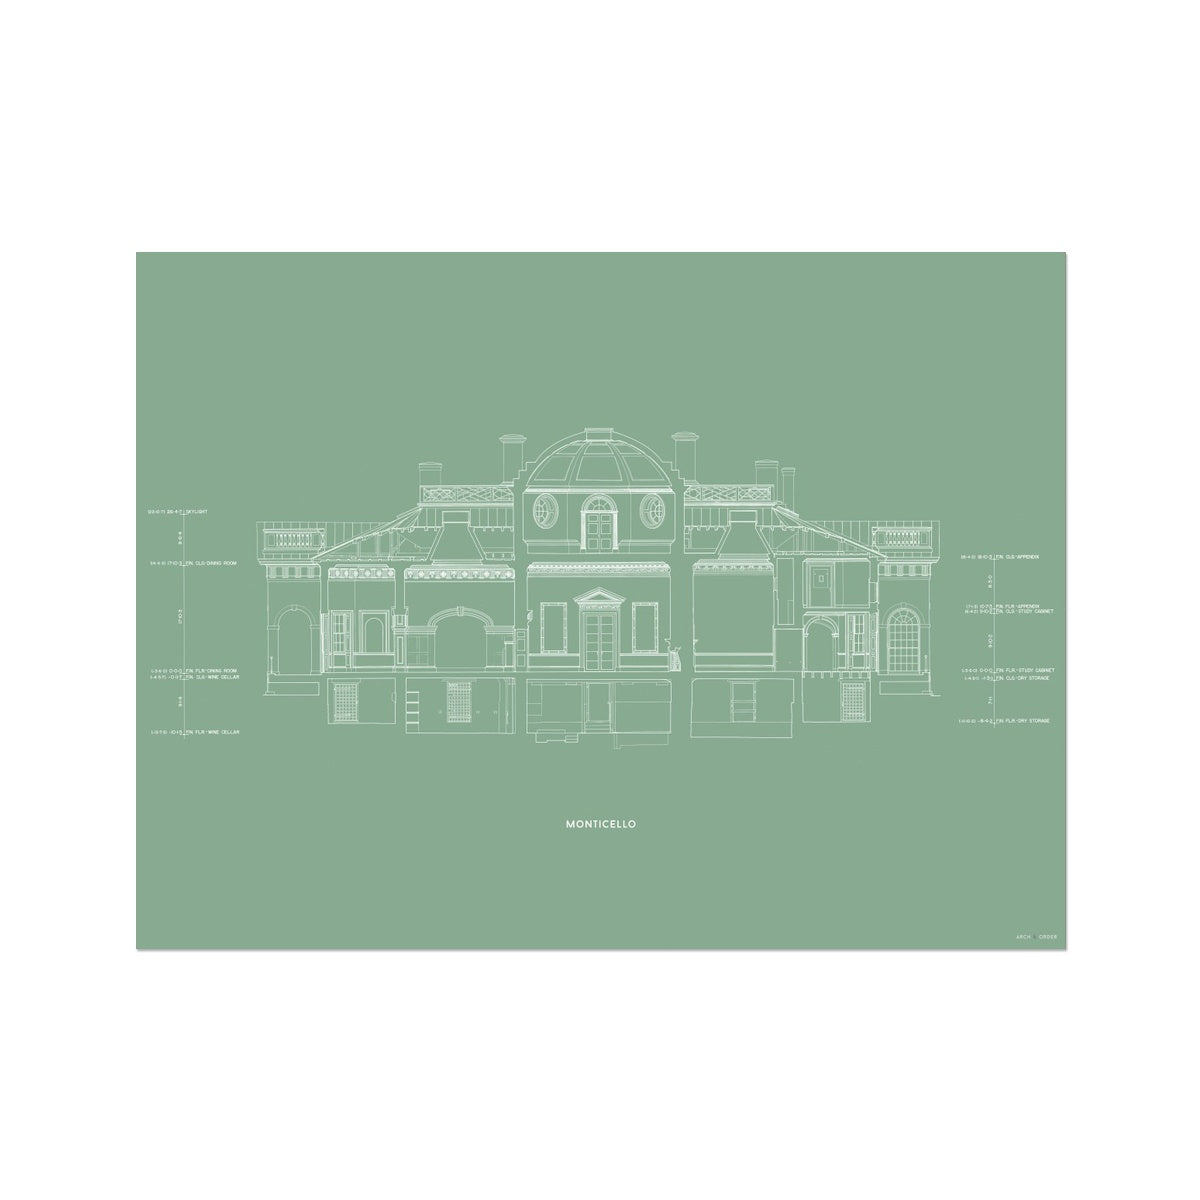 Monticello - West Elevation Cross Section - Green -  Etching Paper Print